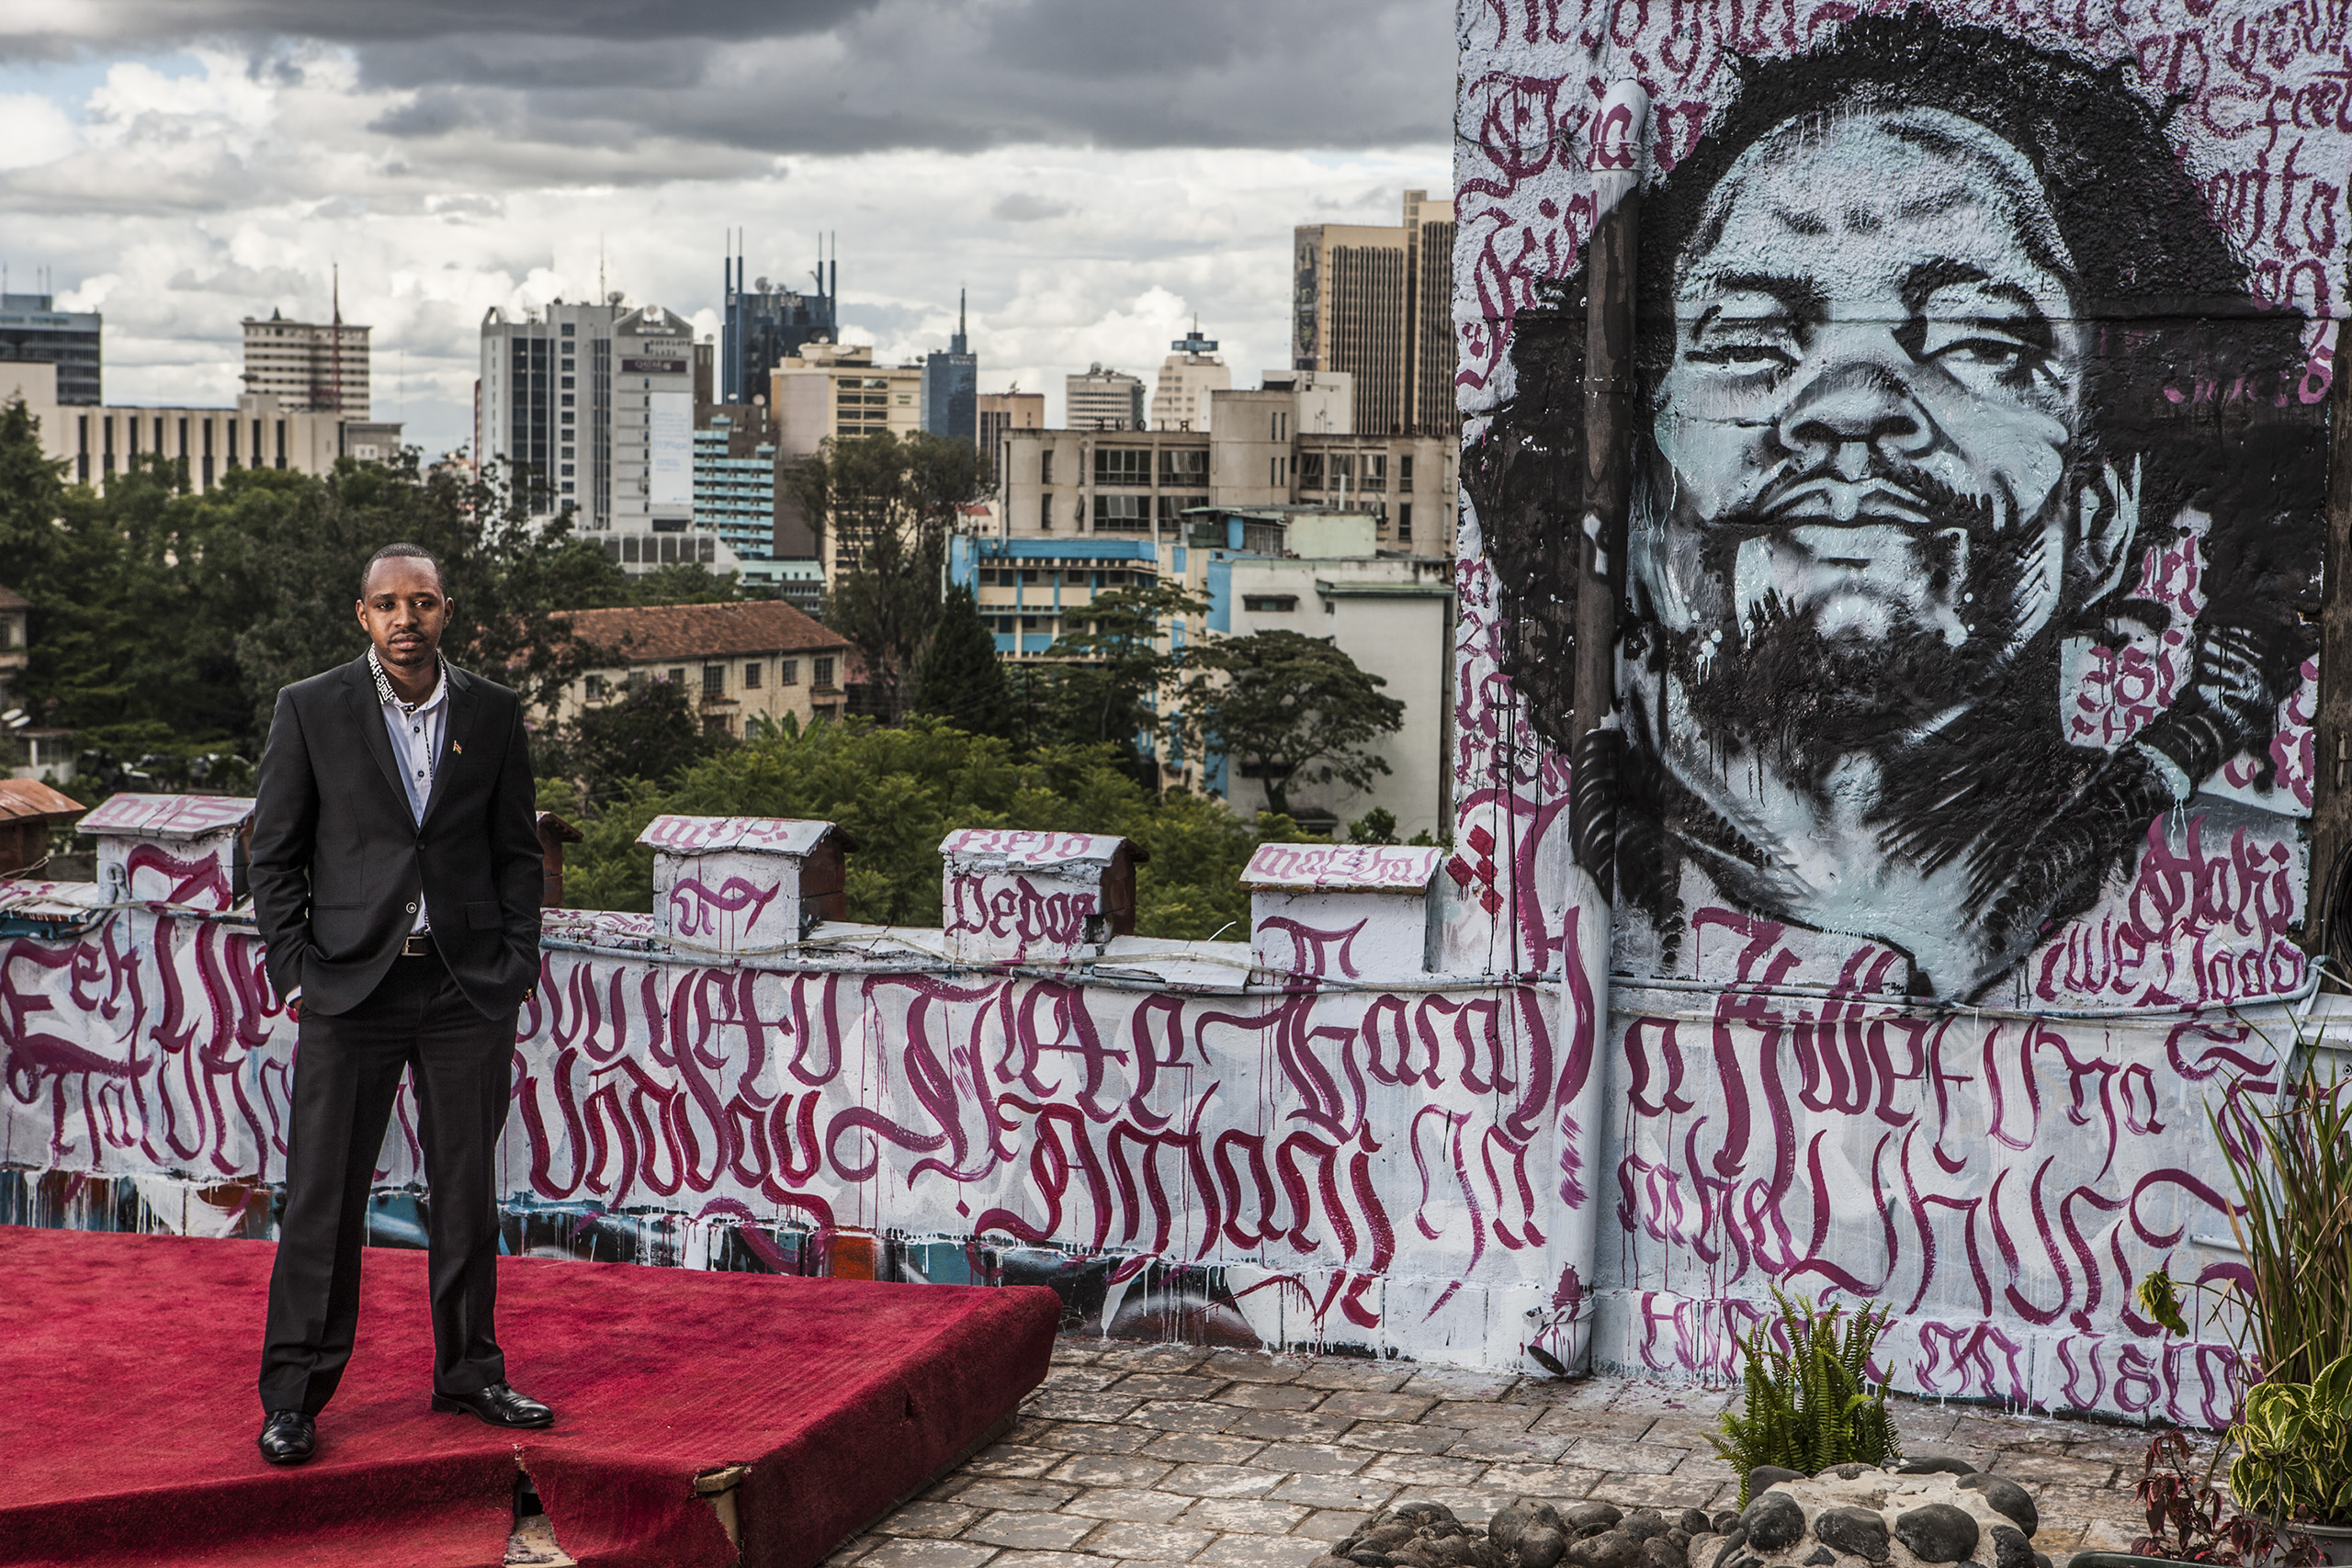 Kenyan Political activist Boniface Mwangi stands for a portrait on the roof of Pawa254, an organization he founded, in Nairobi, Kenya. He stands opposite a graffiti portrait of Dedan Kimathi, a leader of the Mau Mau rebellion against British colonial rule in Kenya. Kimathi was jailed and eventually executed by the colonial administration. Mwangi claims that Kimathi is one of his idols. Boniface started as a photographer but has now morphed into a controversial political activist who uses various forms of art in his protests.